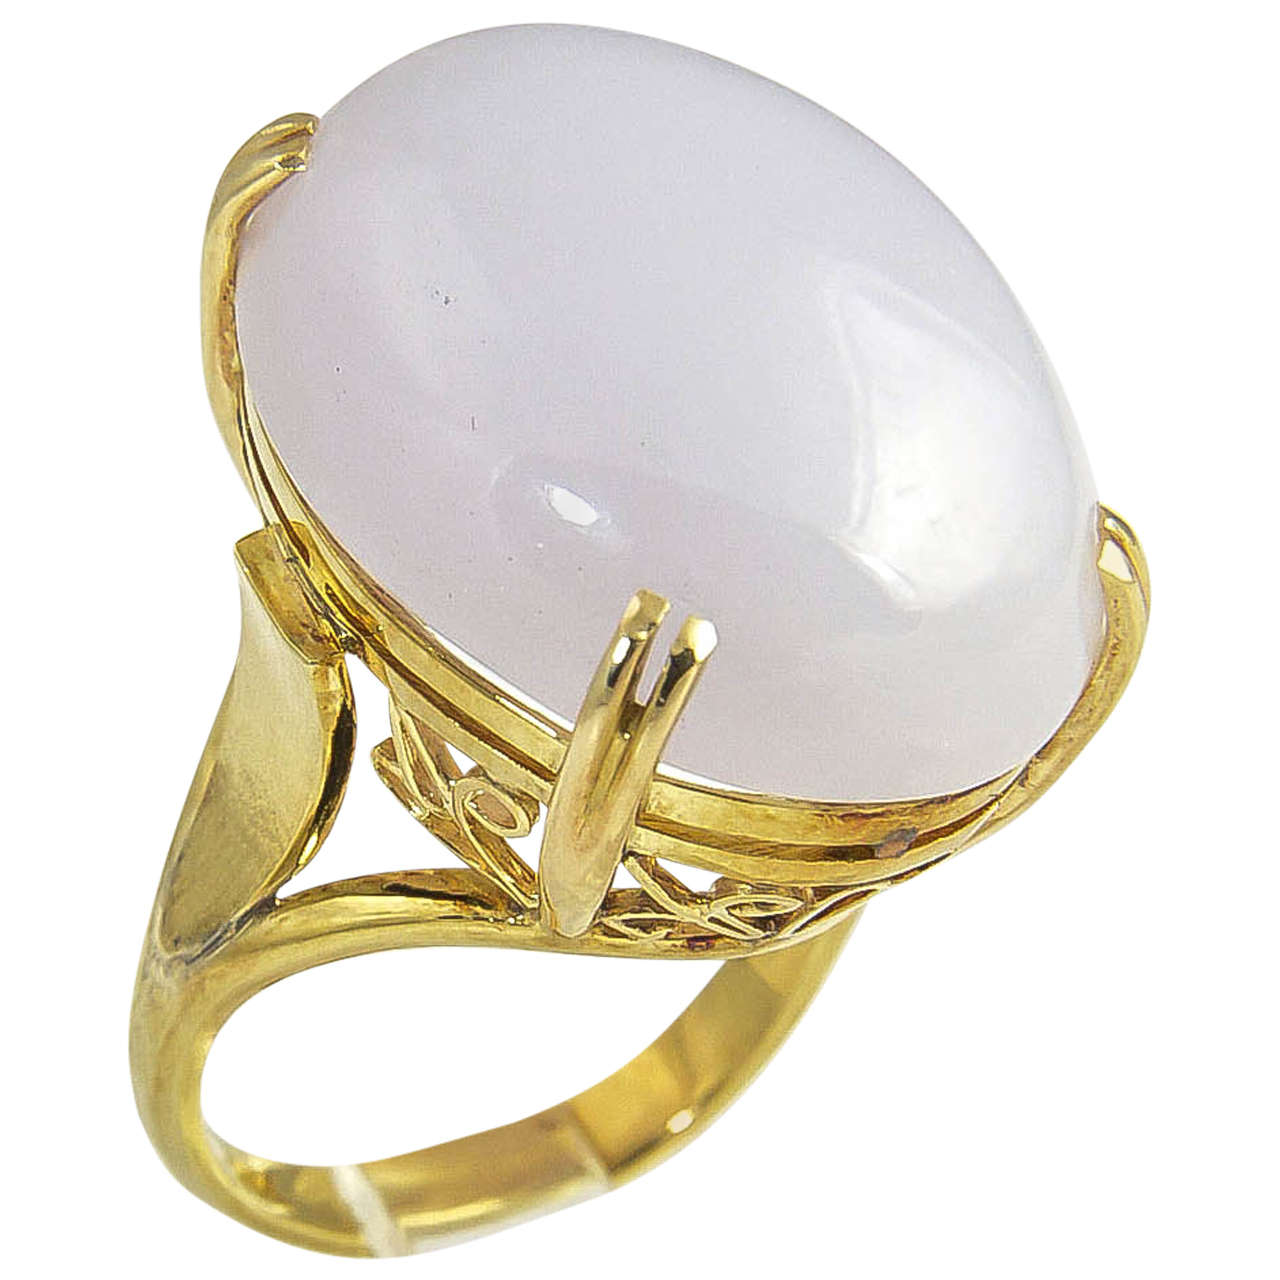 1970s lavender jade gold ring for sale at 1stdibs